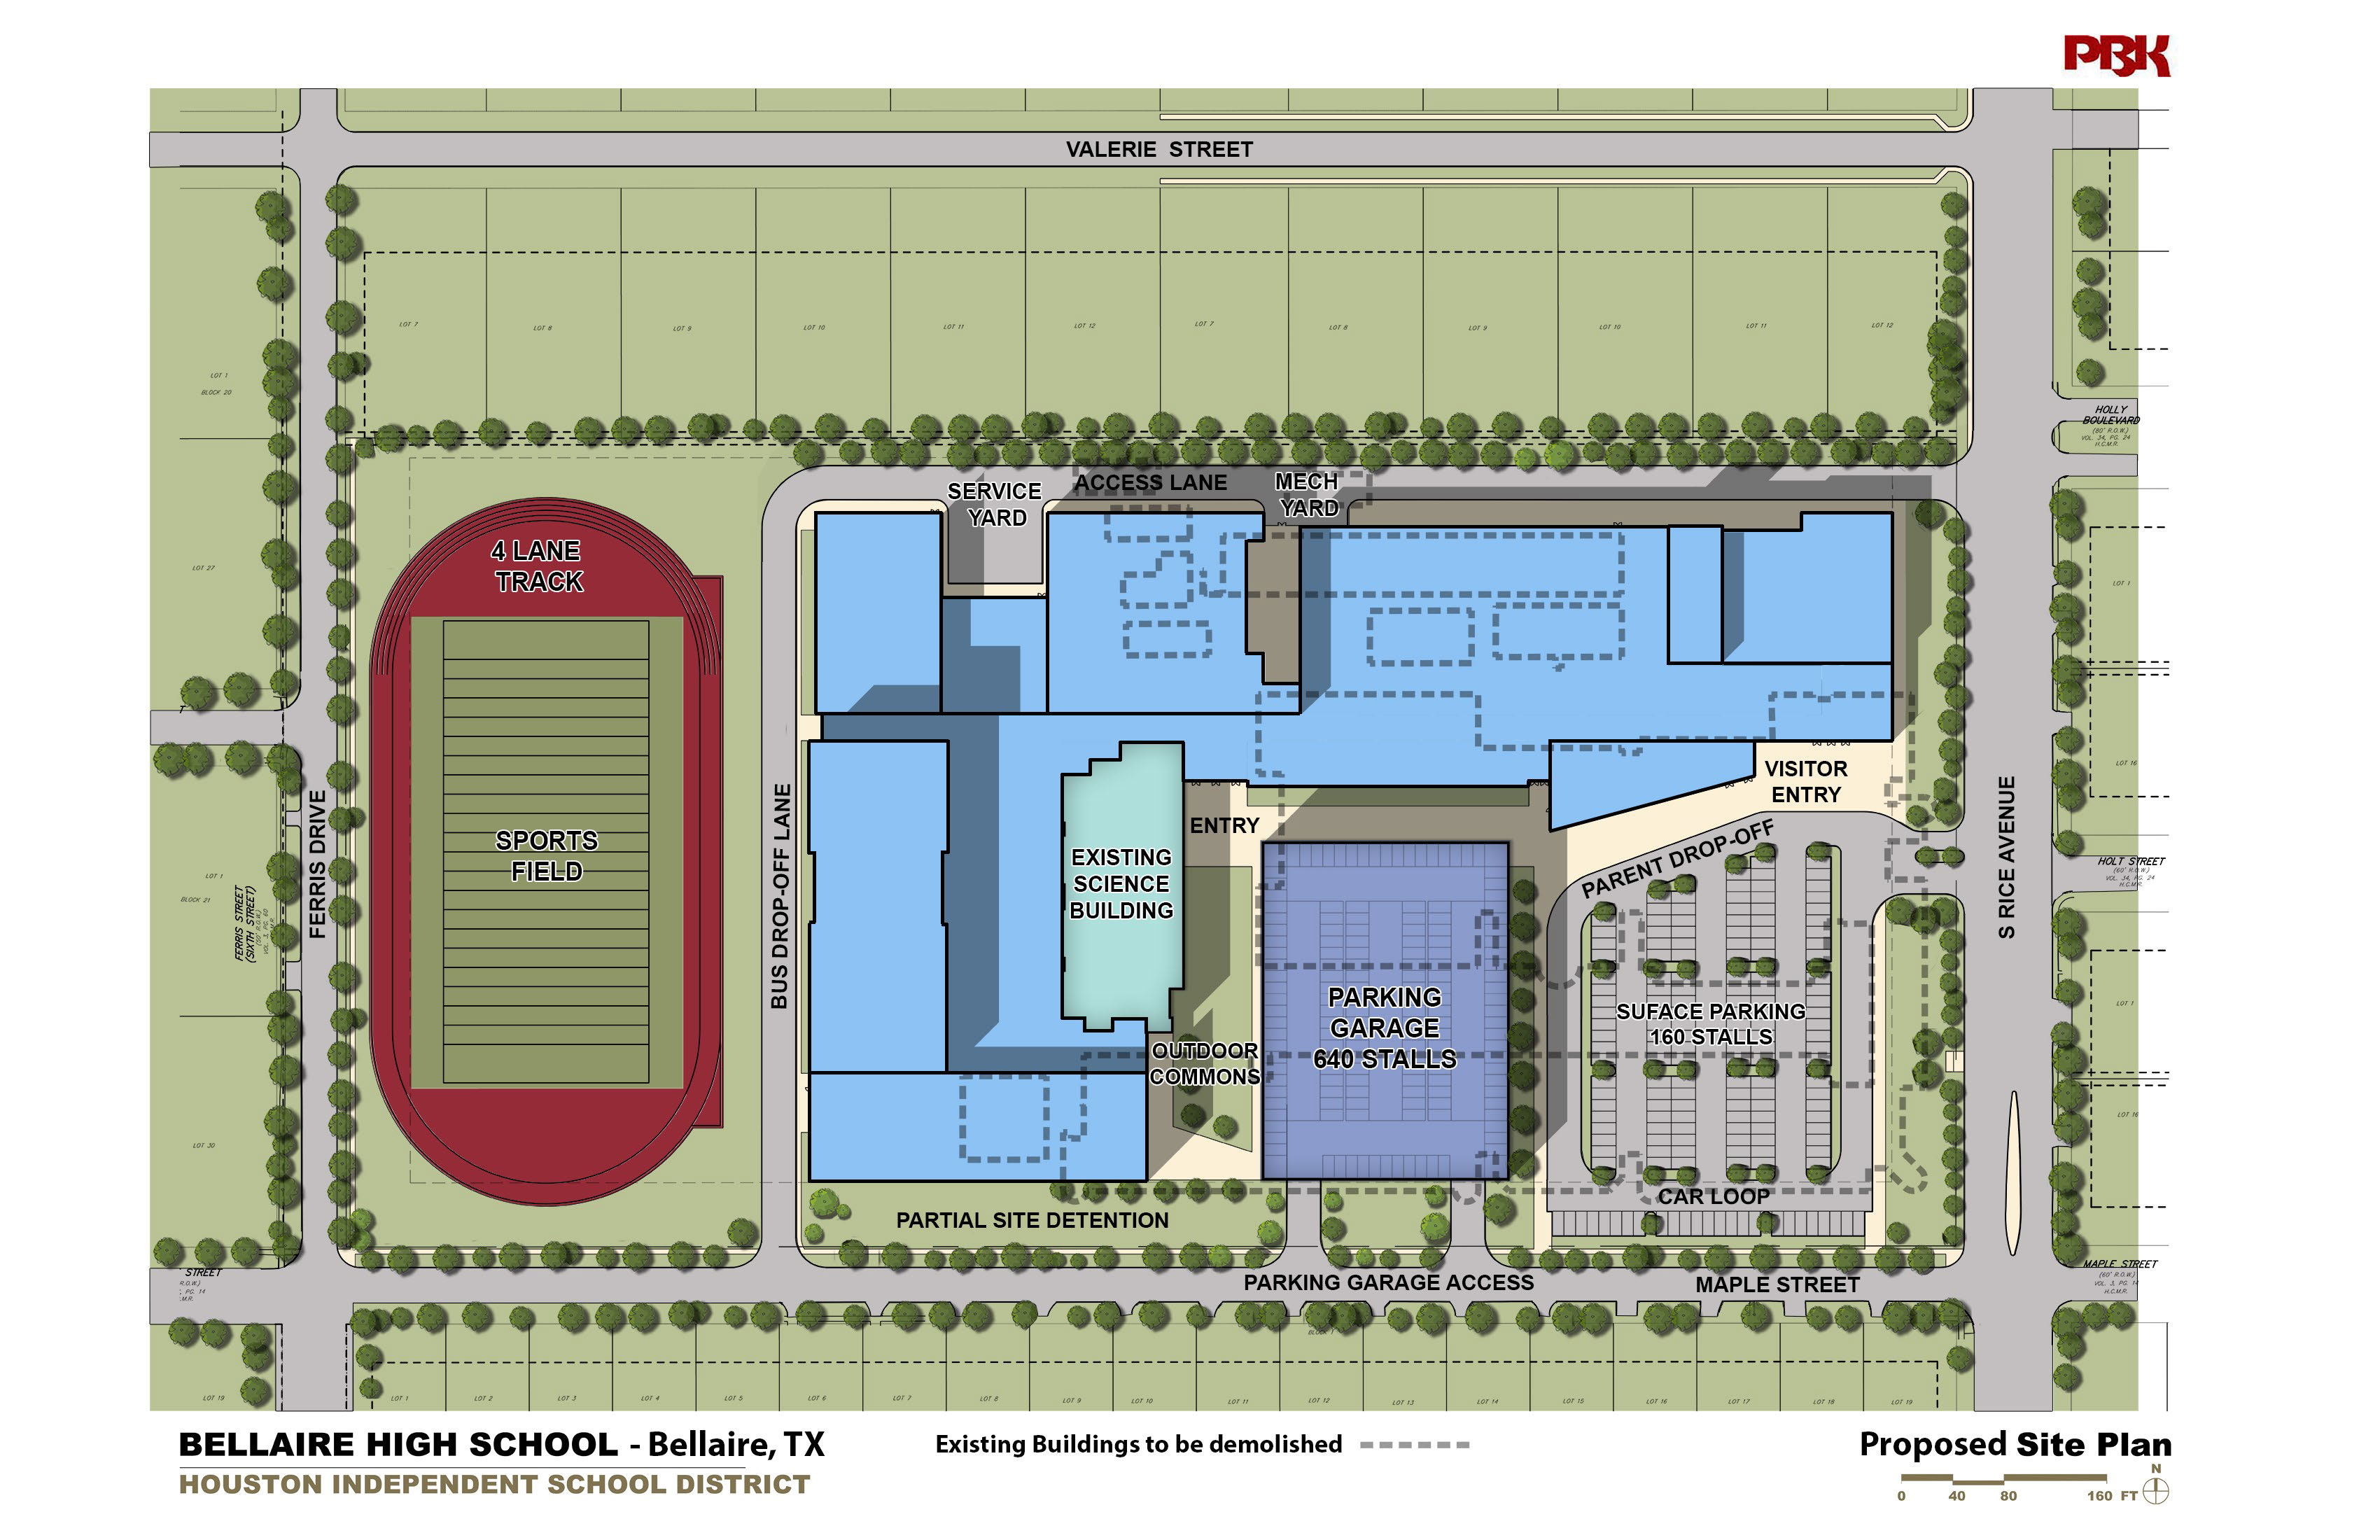 The Bellaire City Council Has Approved An Updated Site Plan And Traffic  Study For The New Bellaire High School And Granted A Permit For The  Property, ...